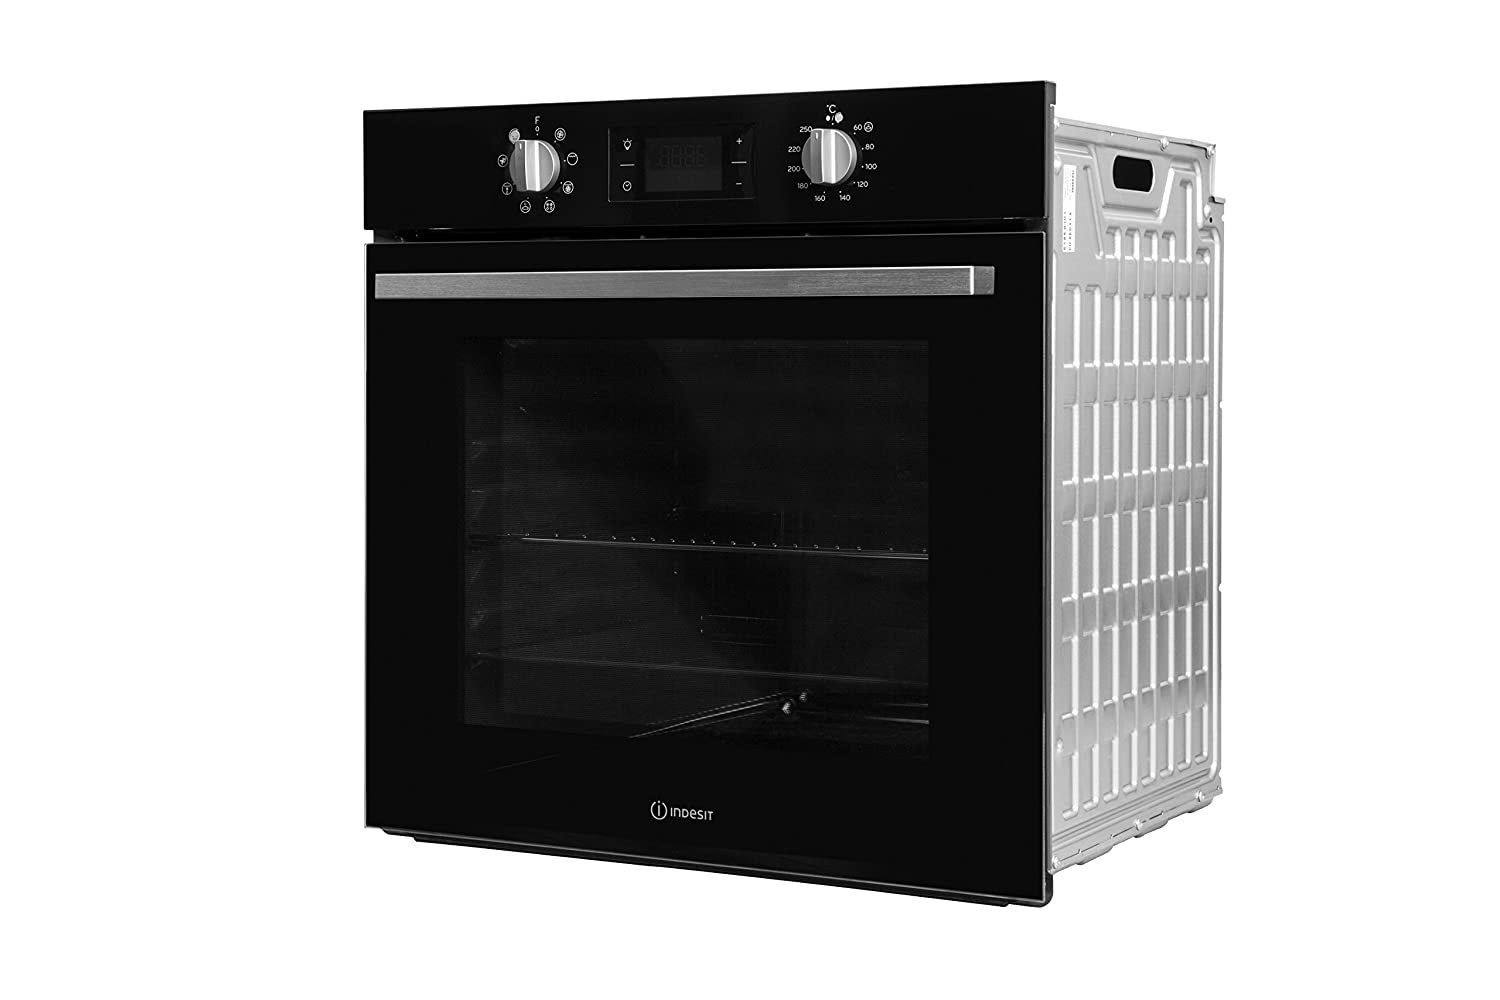 Indesit Aria IFW 6340 BL Built-in Oven Black